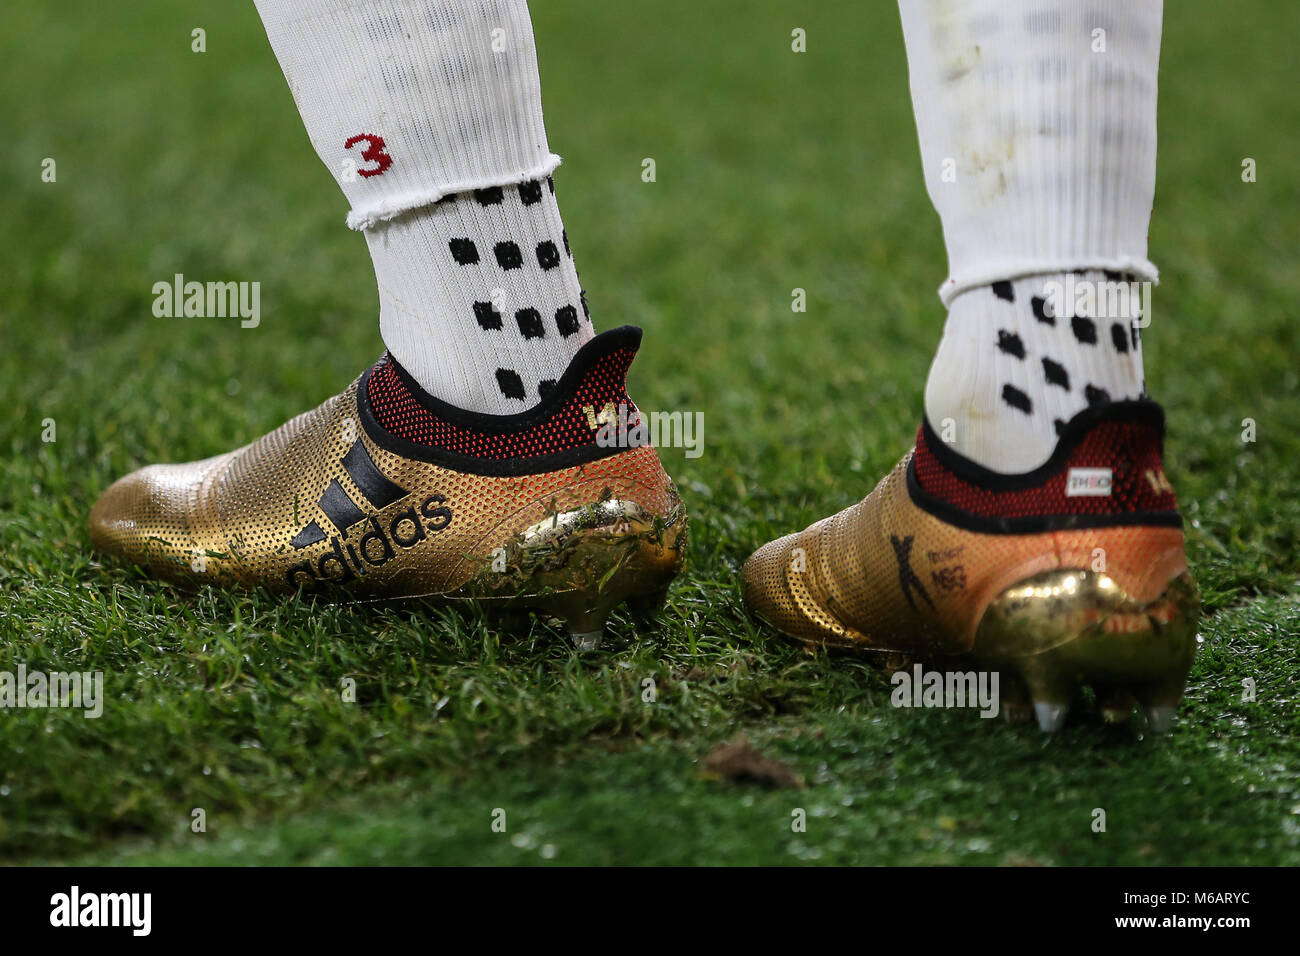 Adidas boots and socks of Theo Walcott of Arsenal during the UEFA Europa League match between Arsenal and FC BATE - Stock Image